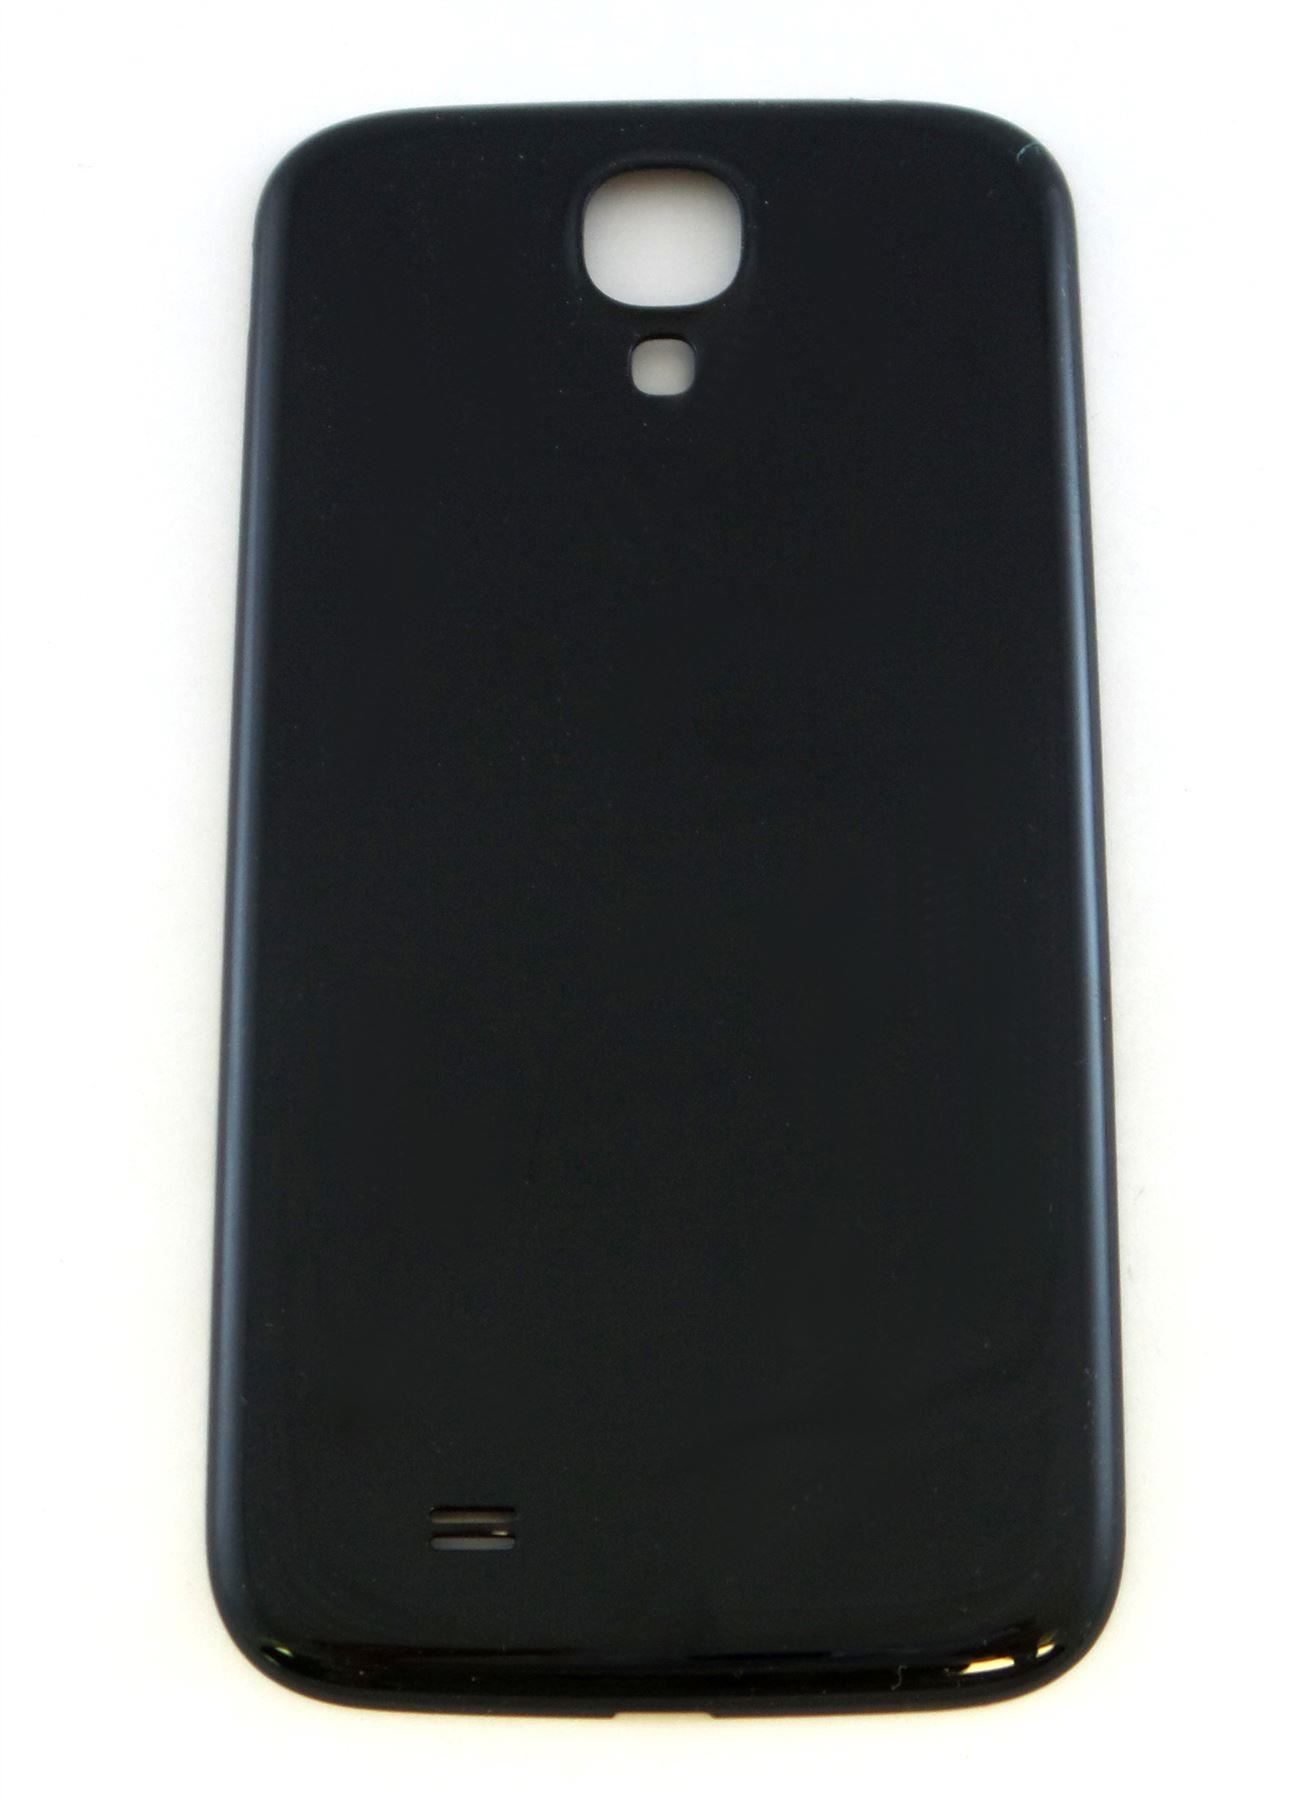 Samsung Galaxy S4 Genuine Battery Door Covers for AT&T Verizon T-Mobile Cricket